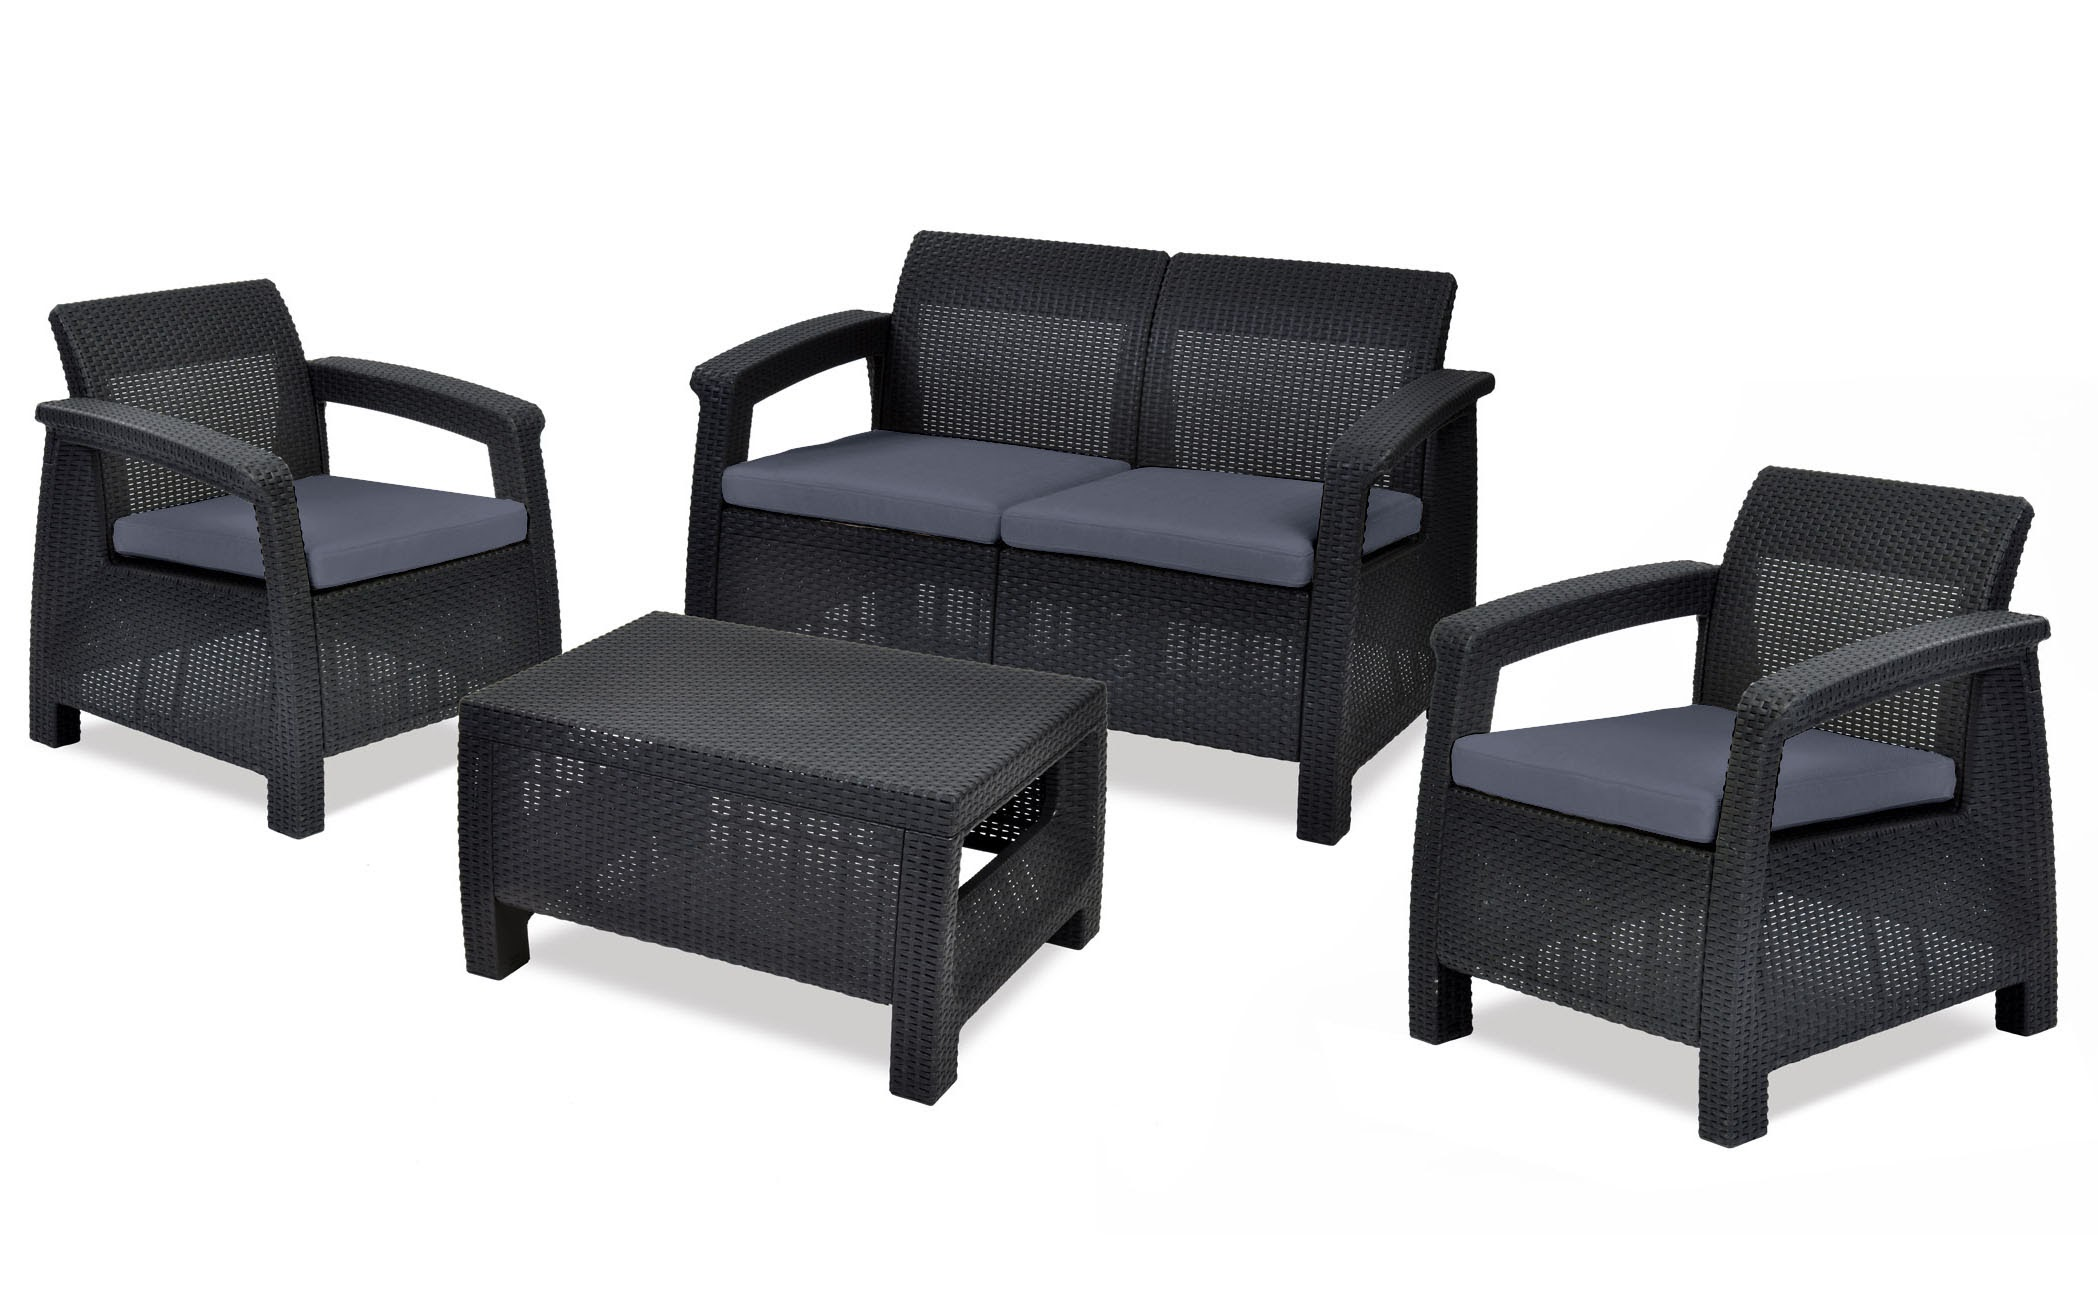 Keter Corfu 4-Piece All-Weather Resin Outdoor Patio Seating Furniture Set with Cushions,... by Keter